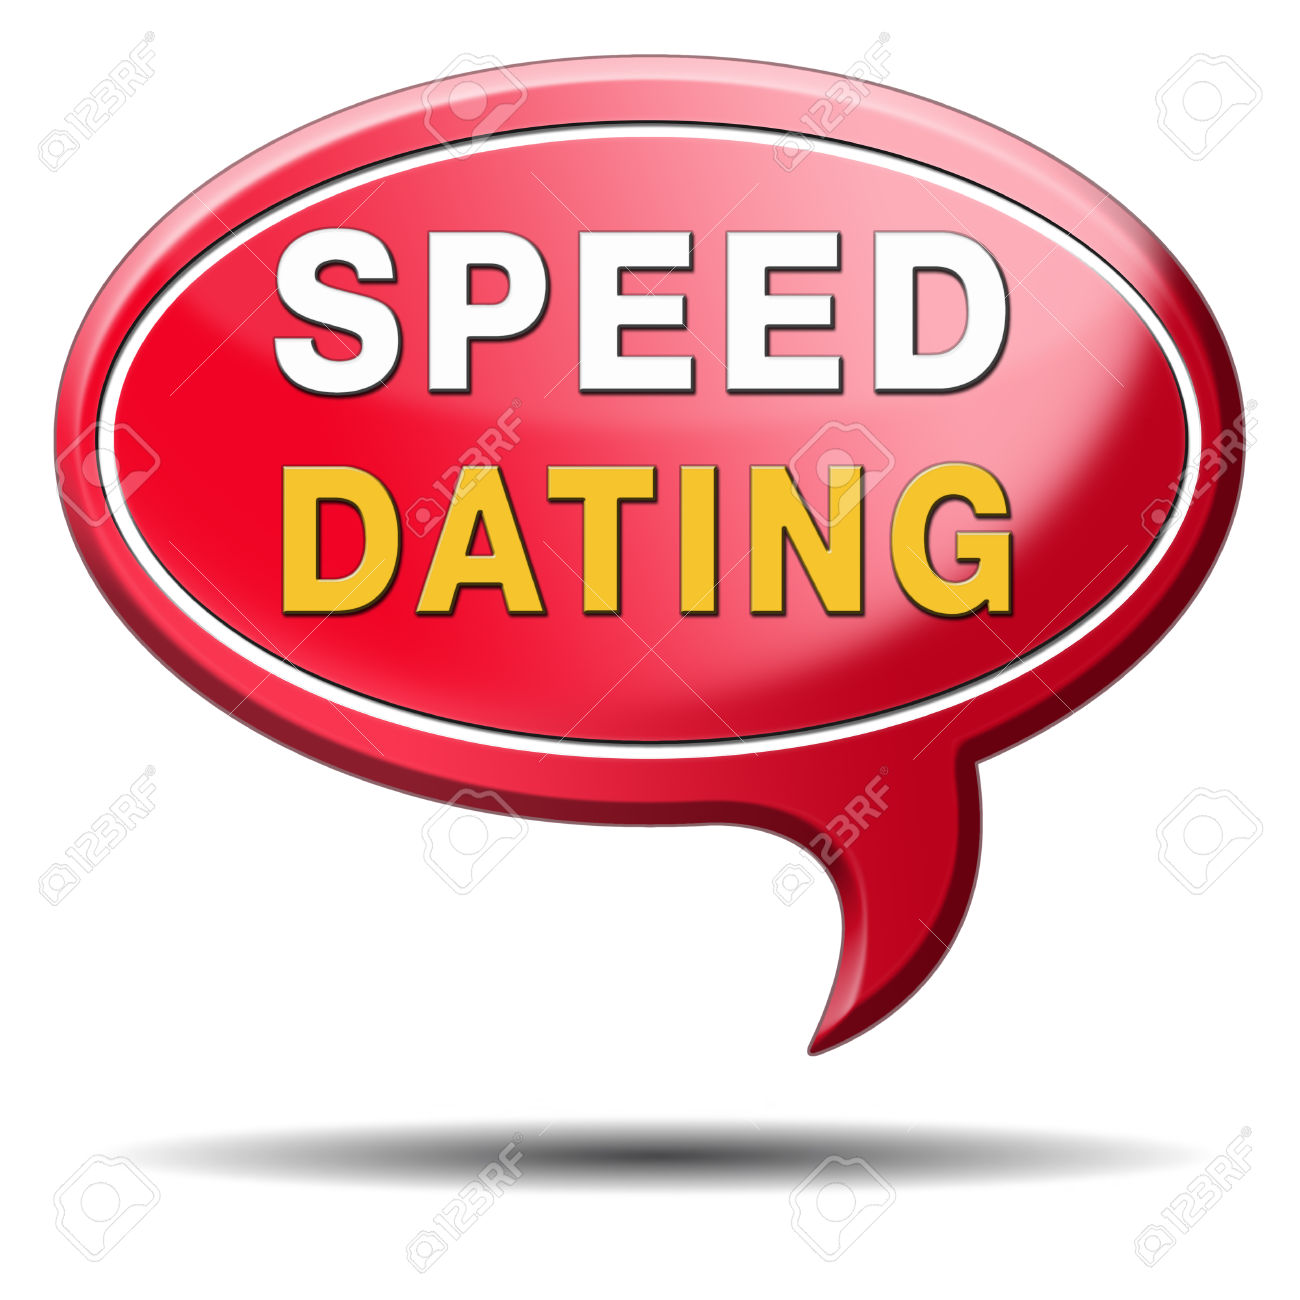 Speed dating clipart picture royalty free library Speed Dating Icon Stock Photos & Pictures. Royalty Free Speed ... picture royalty free library